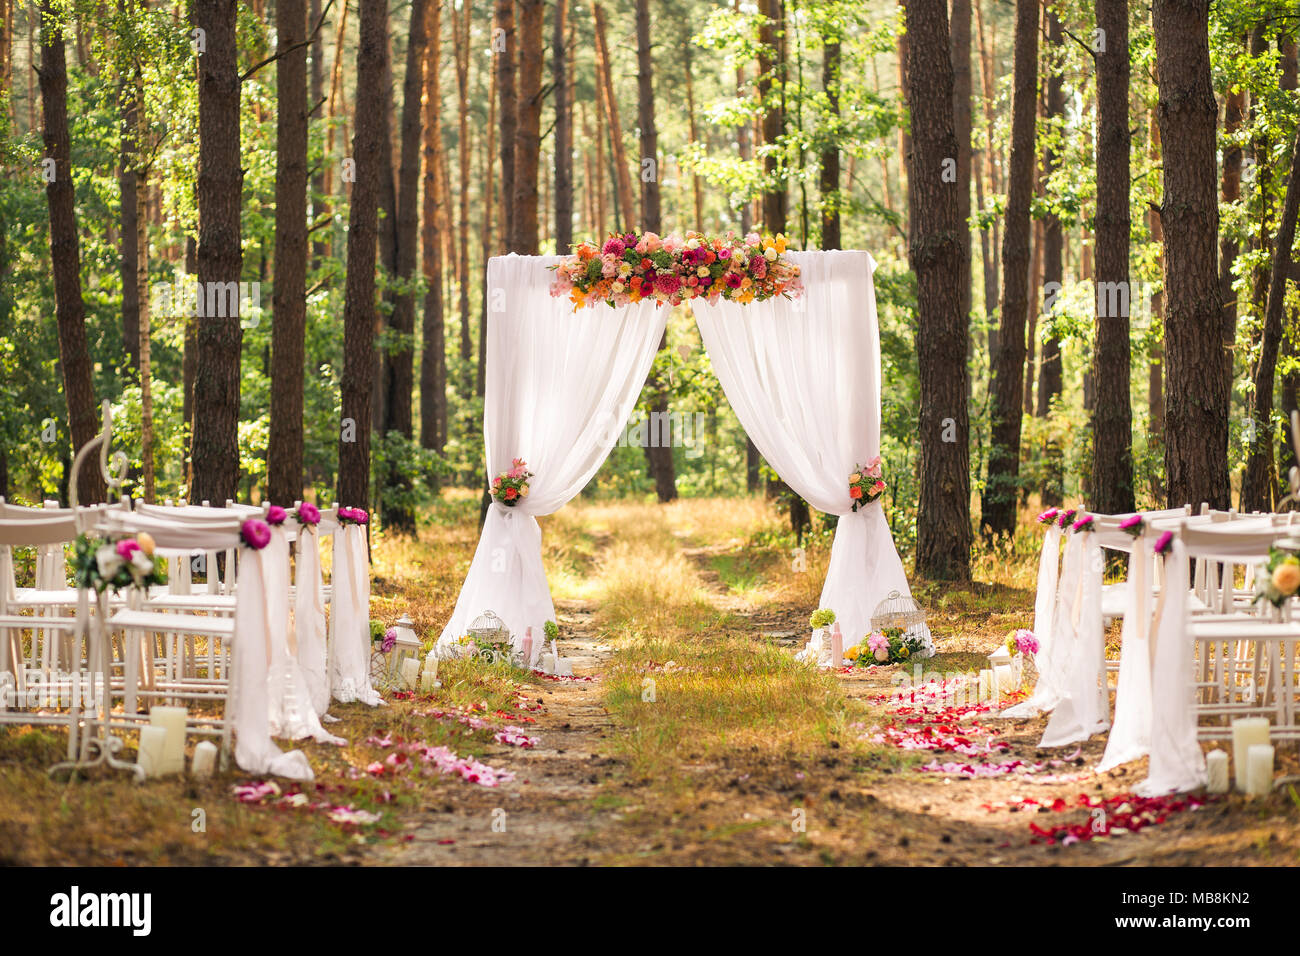 Beautiful Elegant Wedding Decorations Of Place For Ceremony